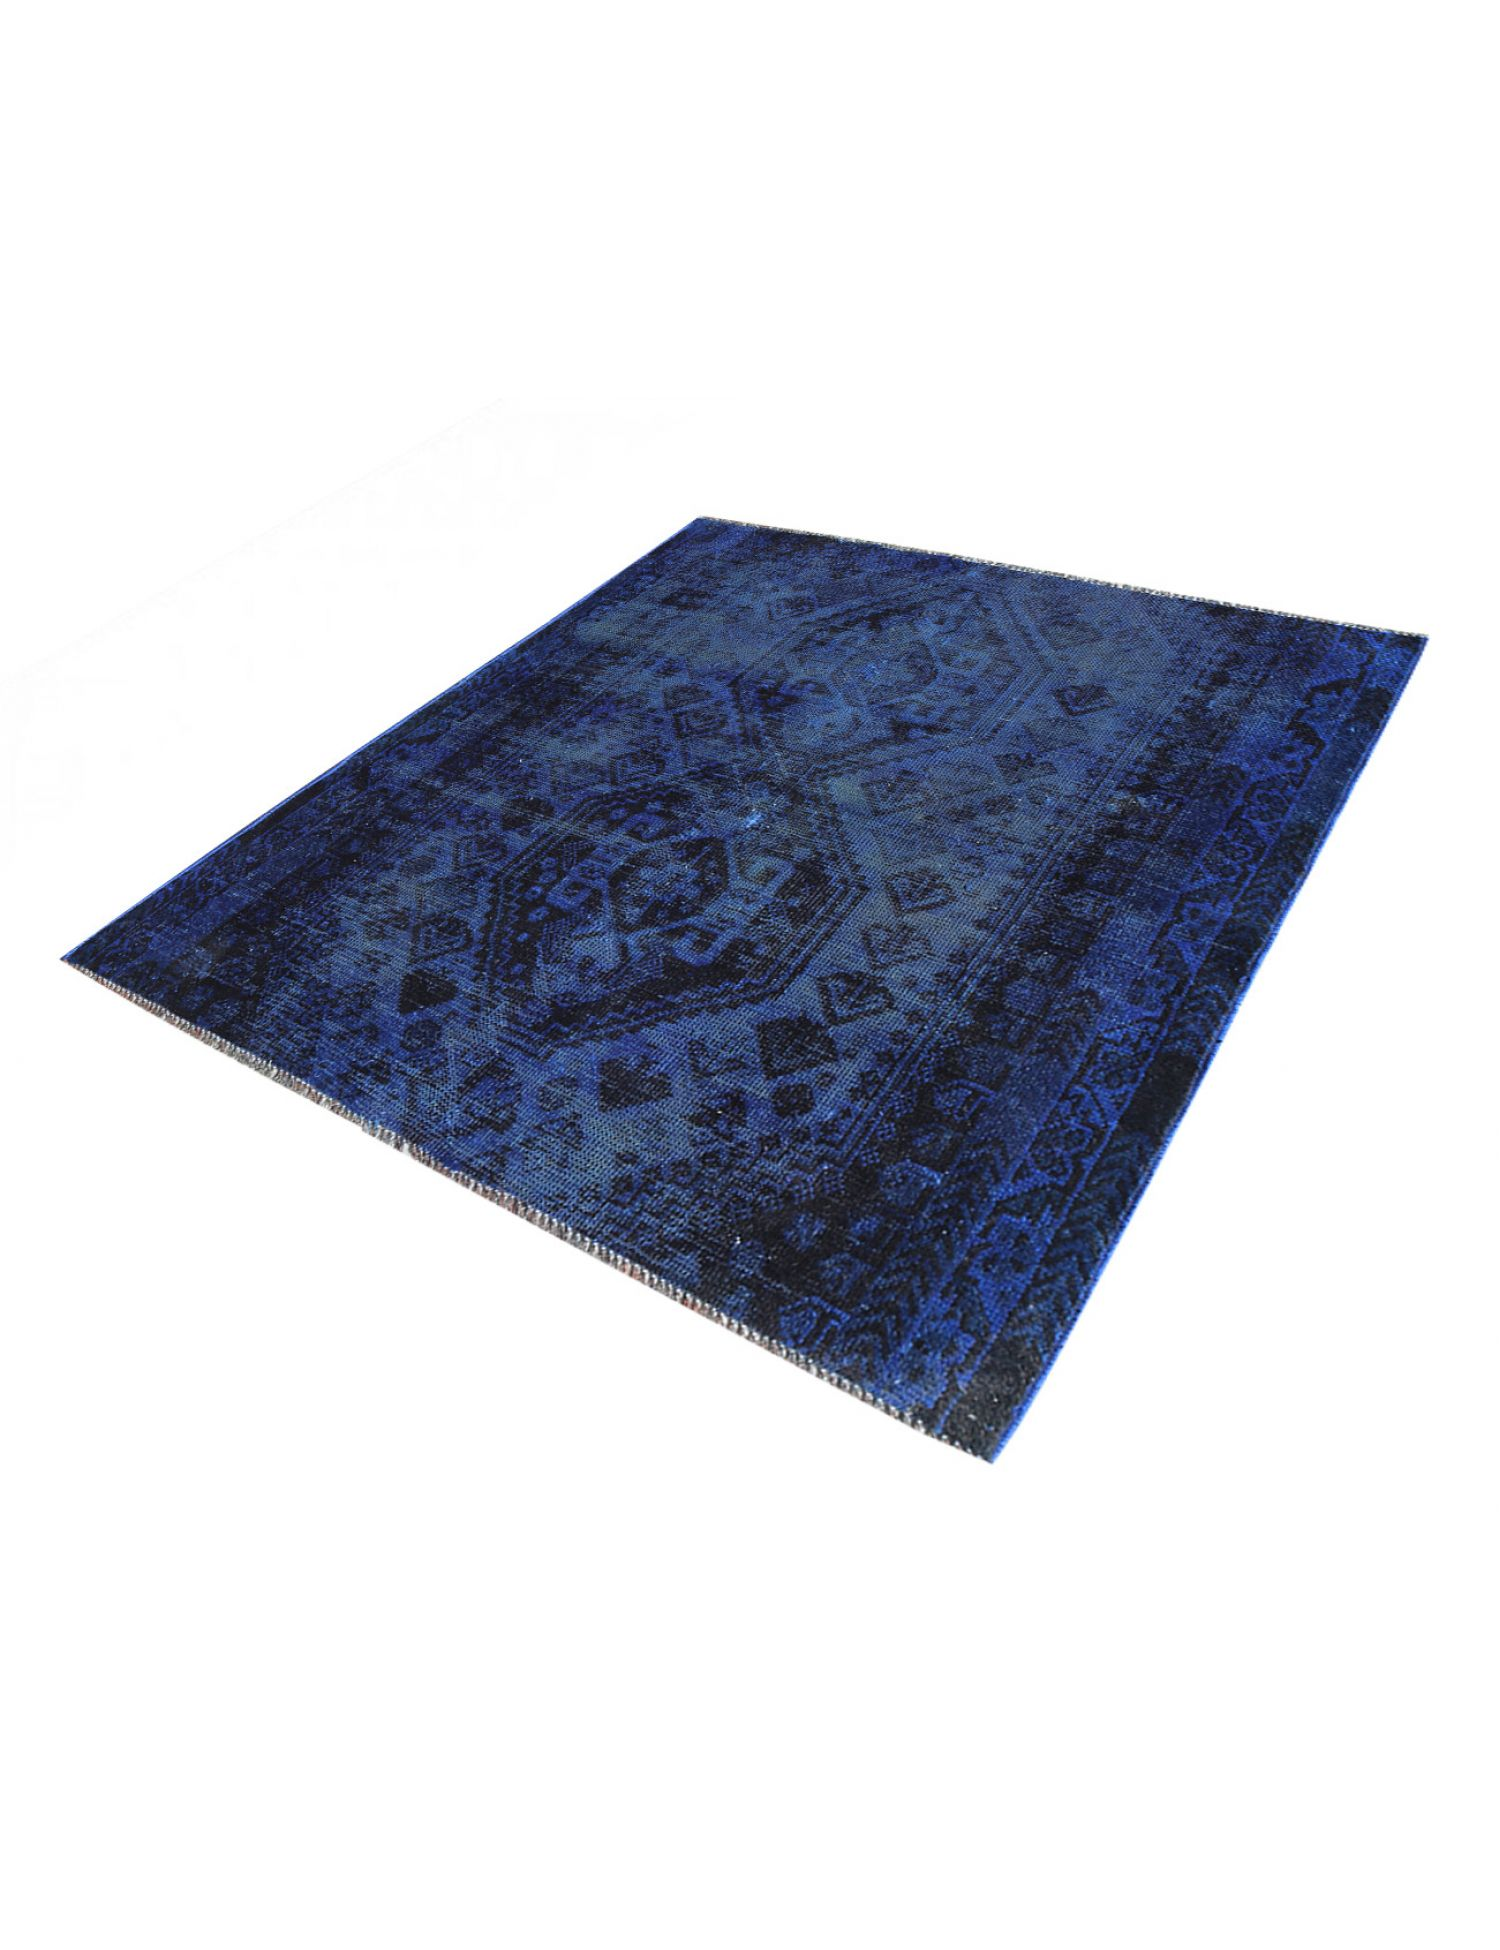 Vintage Carpet  blue <br/>149 x 148 cm